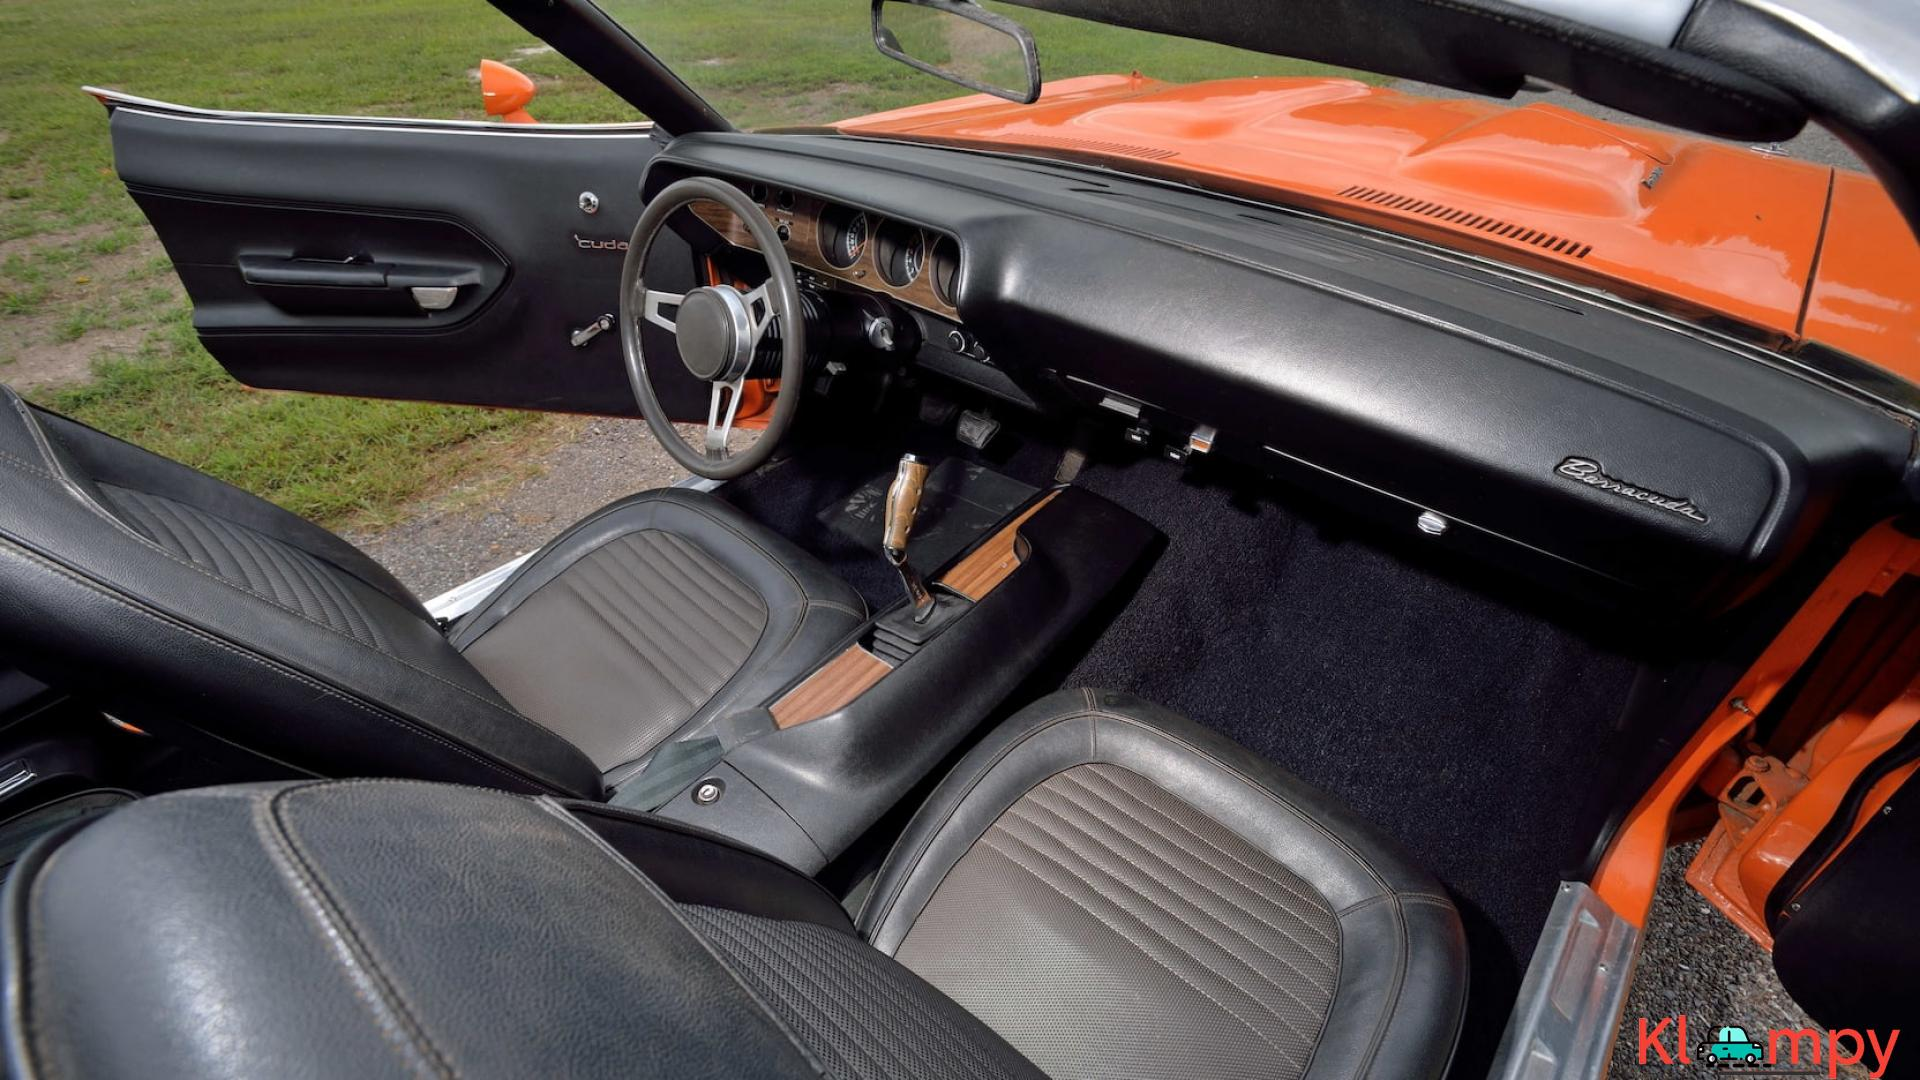 1970 Plymouth Cuda Convertible 340 Matching Numbers - 6/17